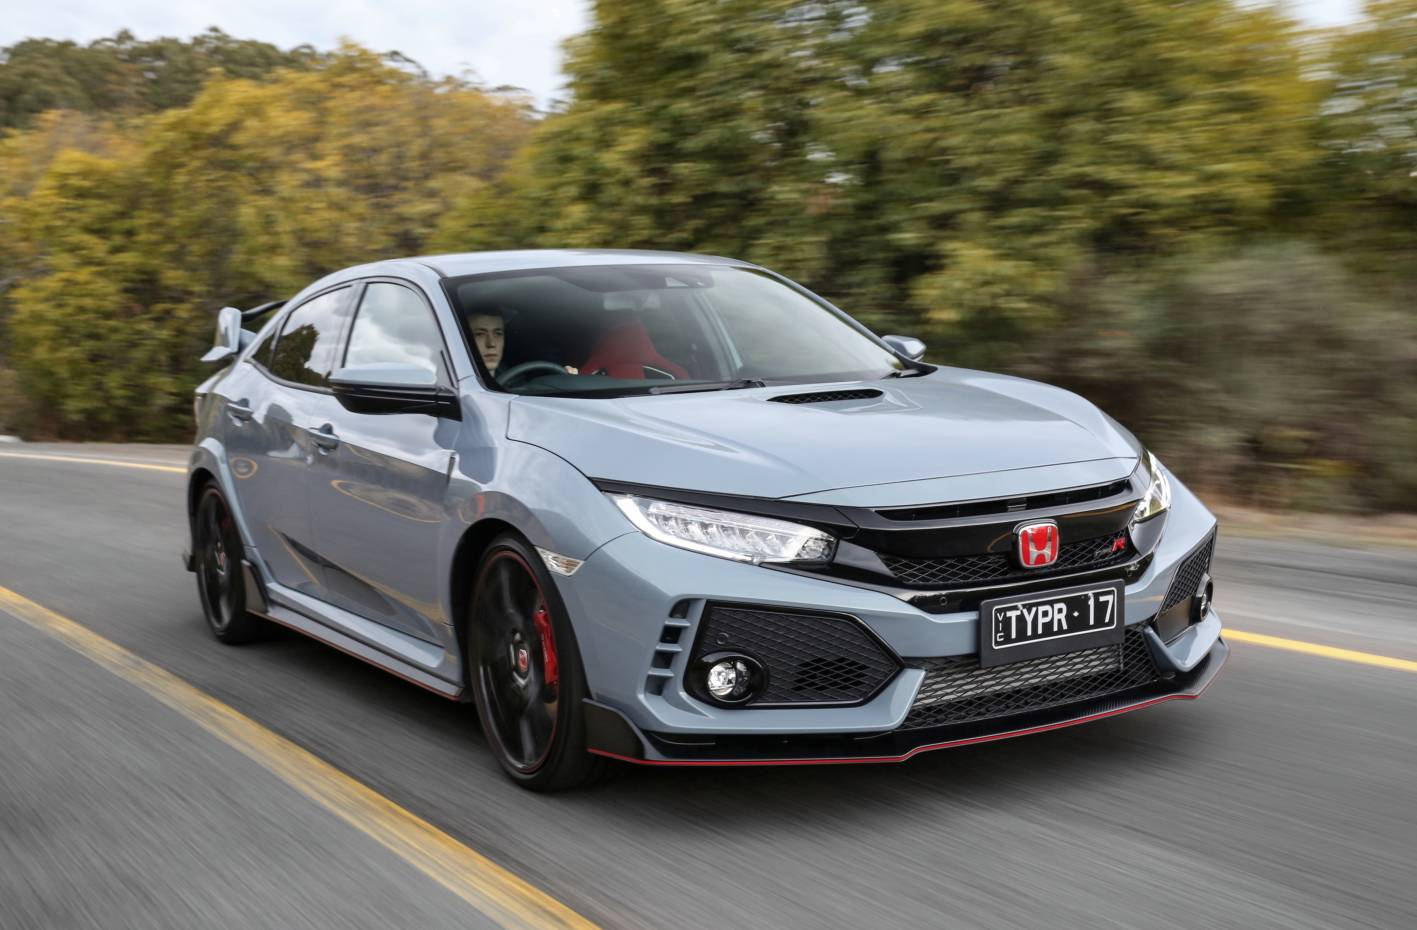 Pearlescent Car Paint >> 2018 Honda Civic Type R: Technical Overview - ForceGT.com